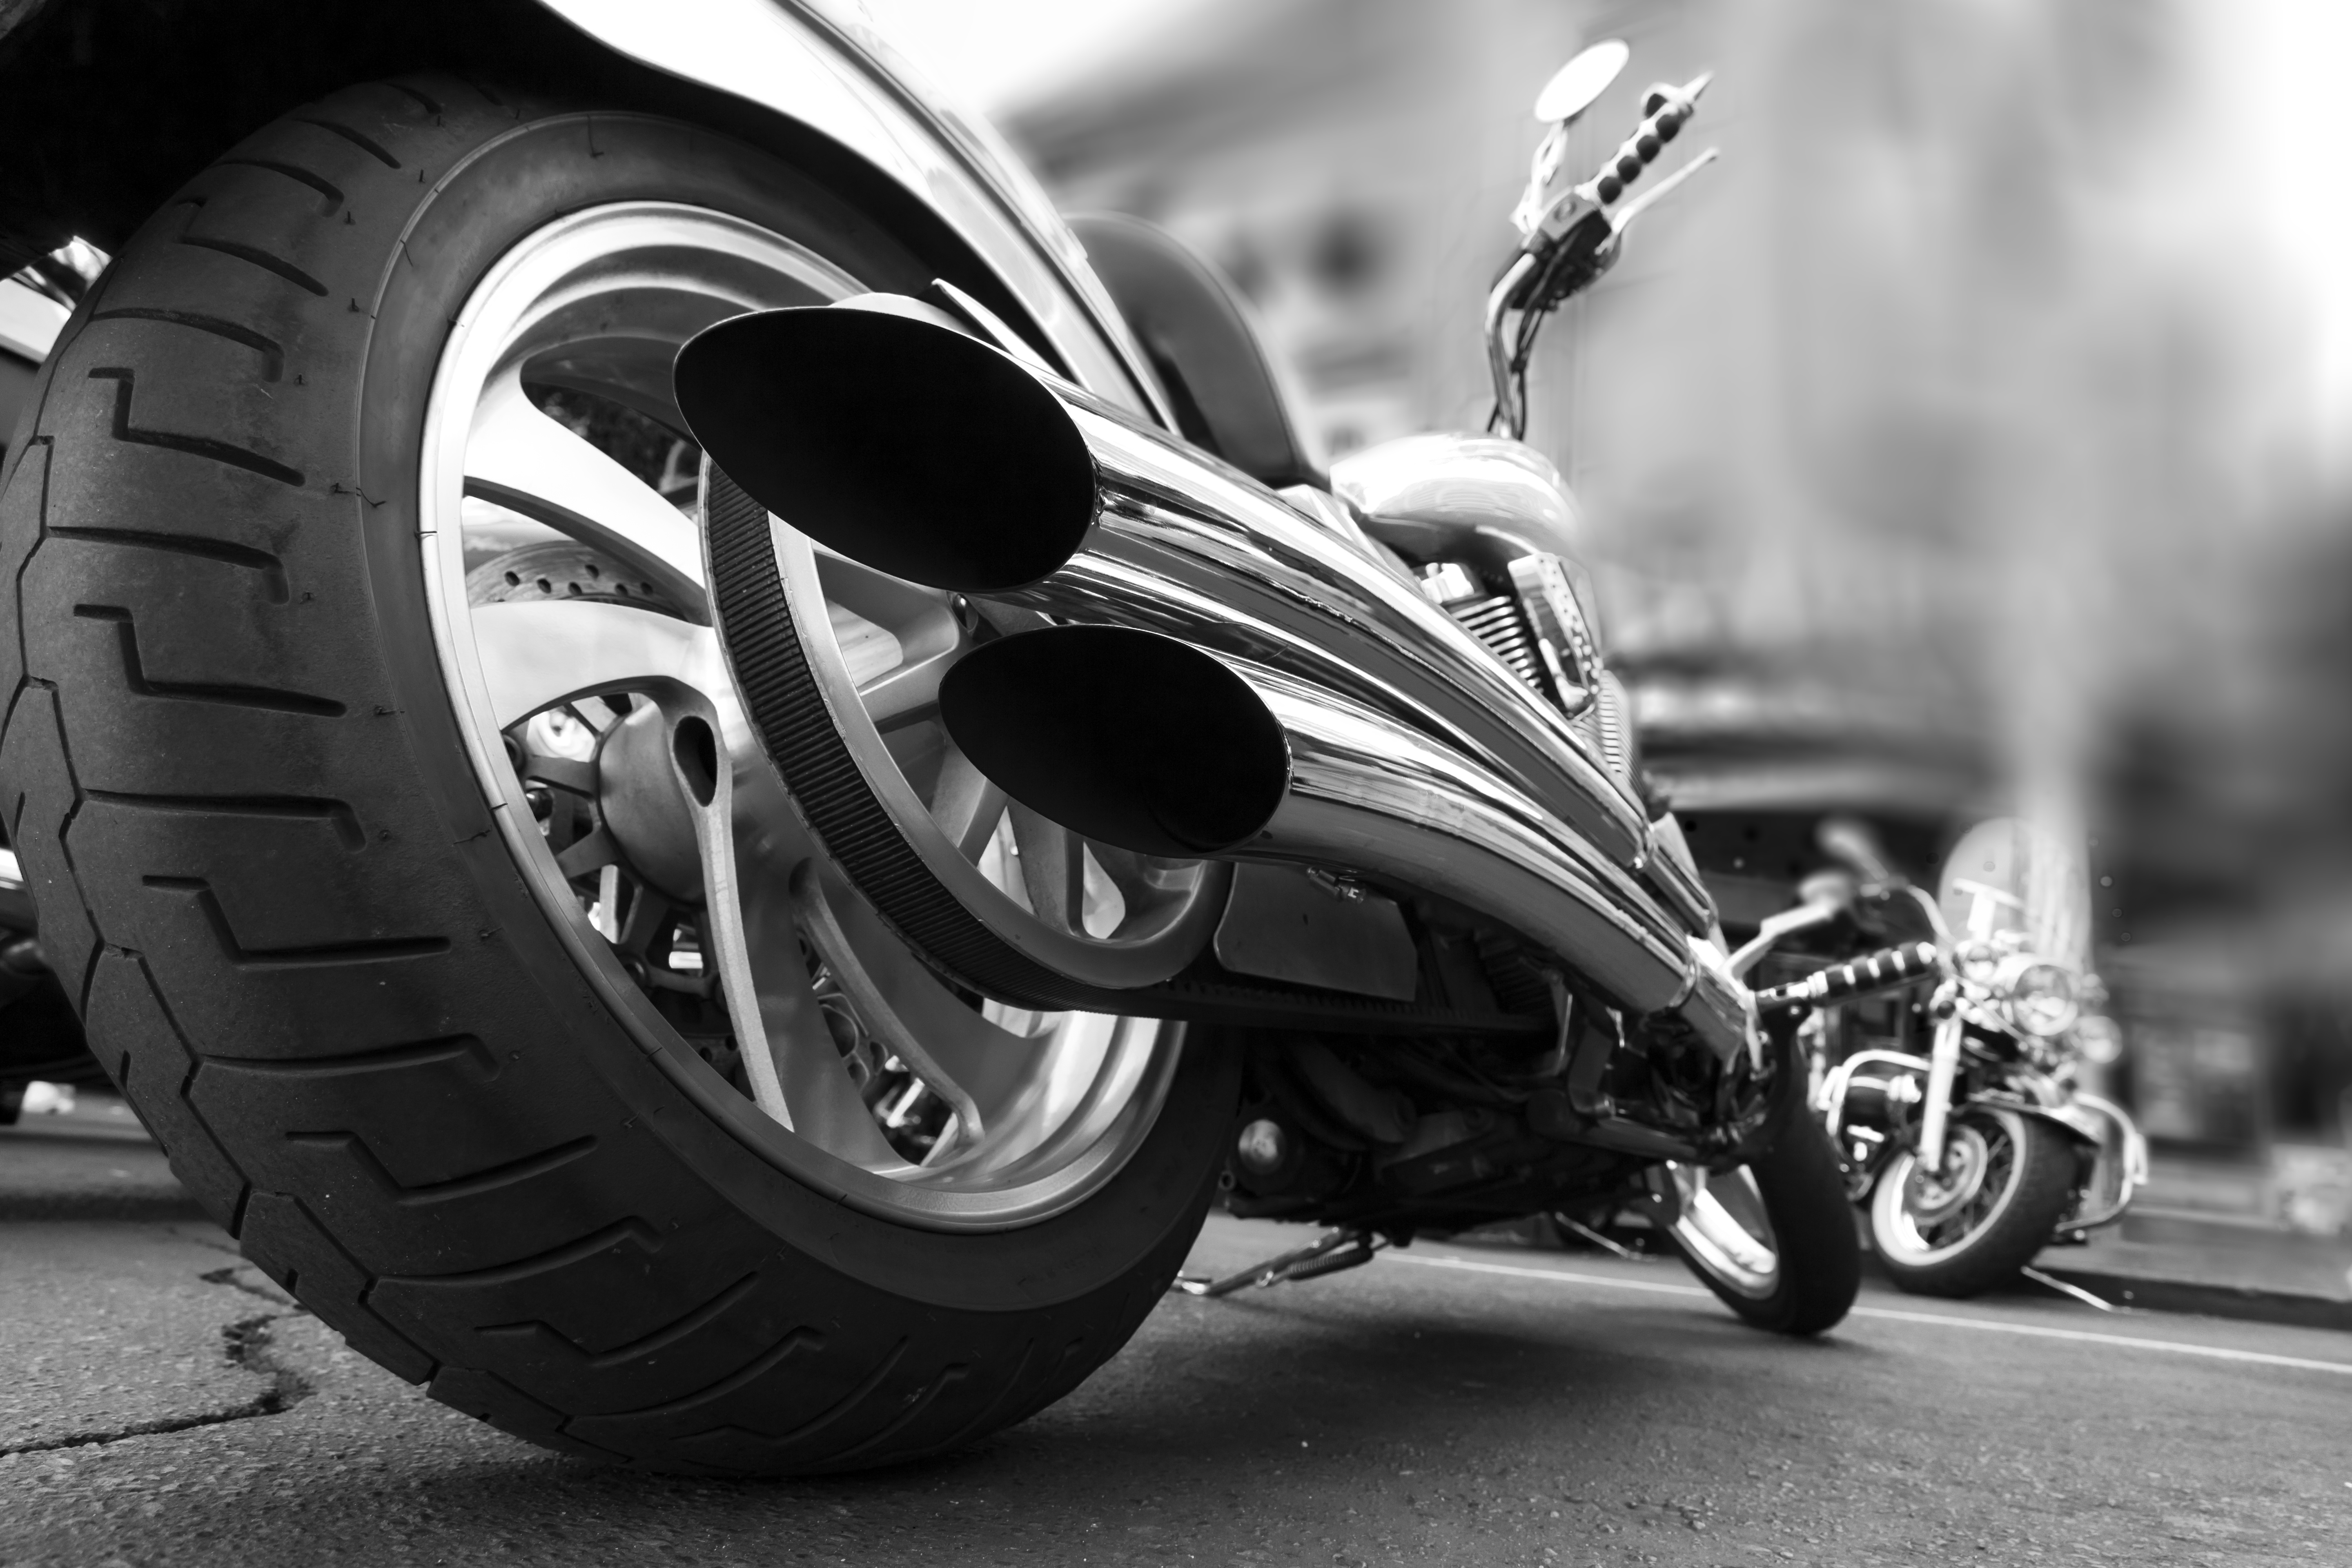 Benefits of Taking a Motorcycle Safety Course